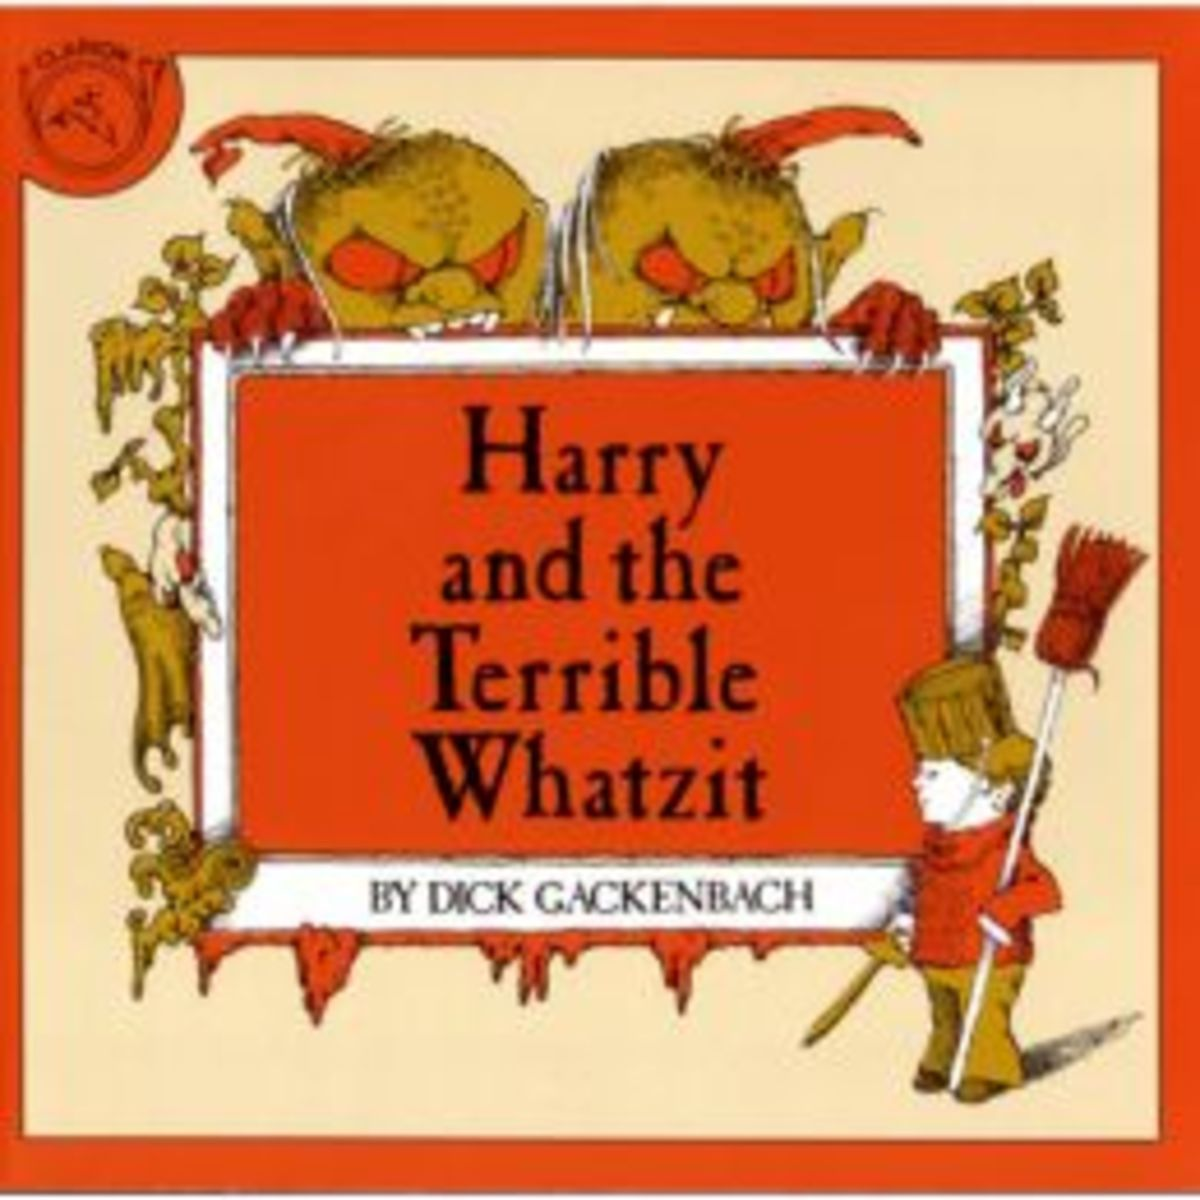 There's a Whatzit hiding in Harry's basement, and it grows when Harry is frightened. When Harry stands up to the bully, he defeats the monster and drives it from his basement.